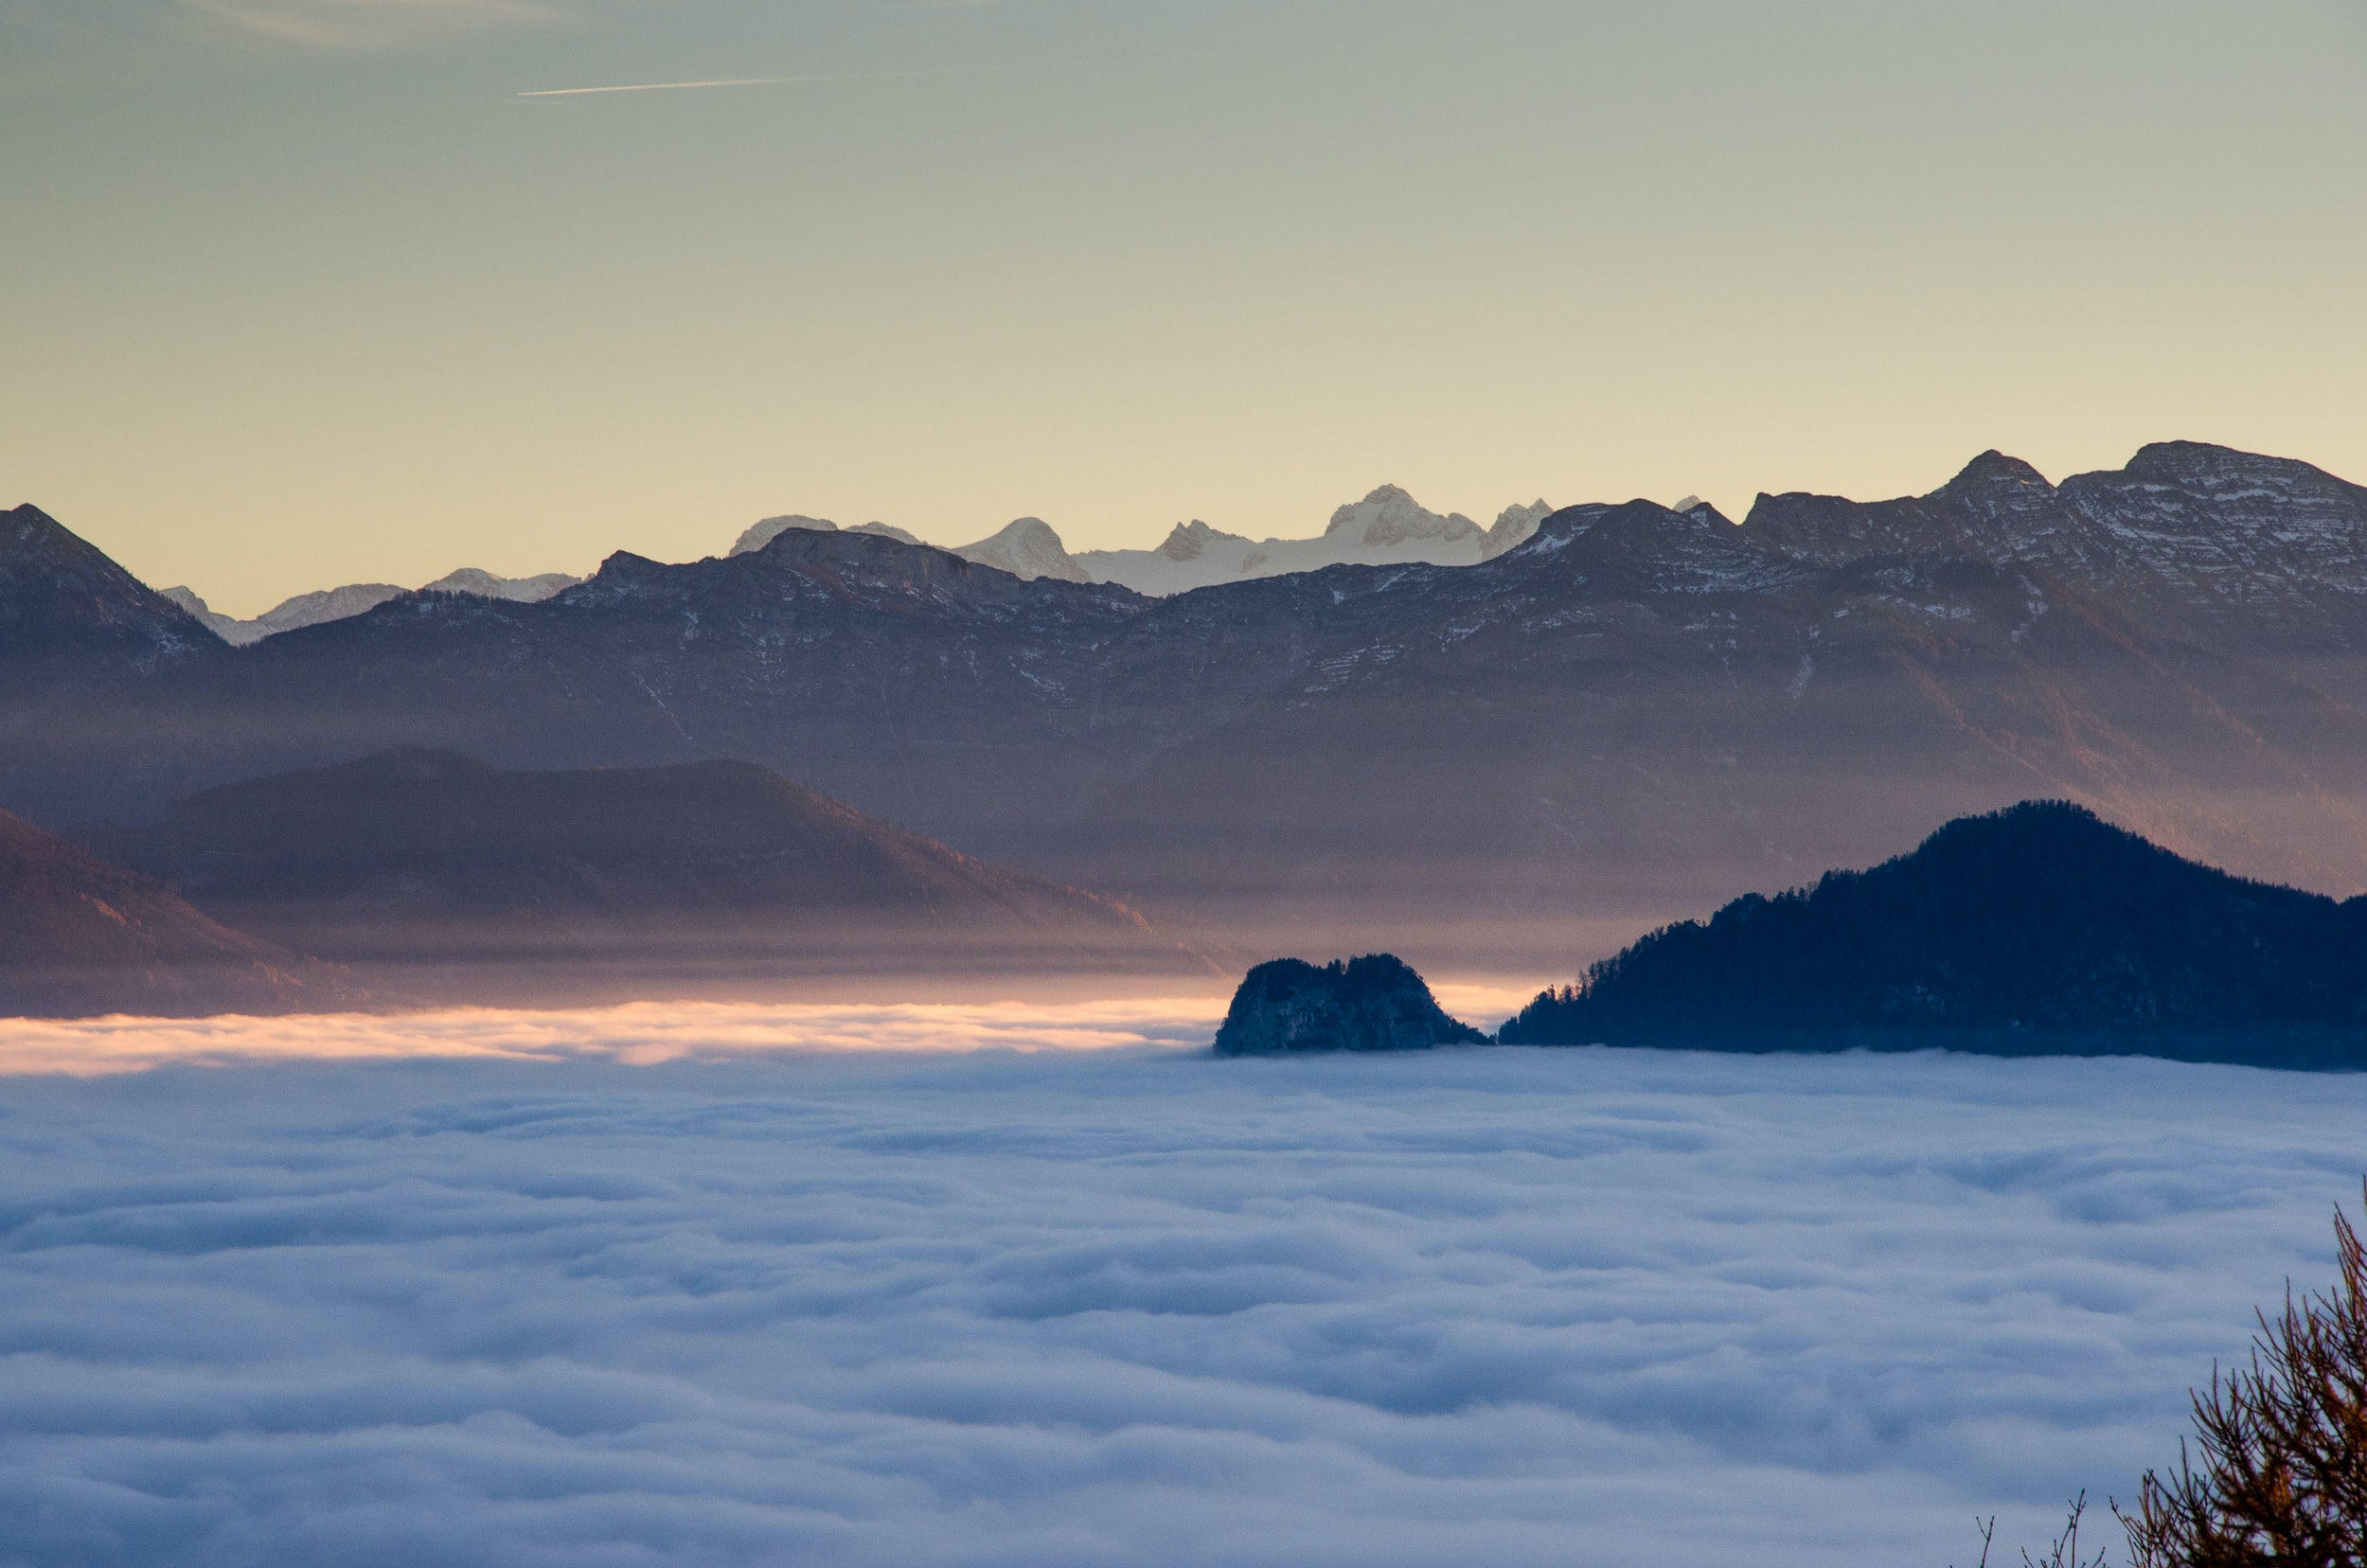 The clouds surrounding the mountains during golden hour in Gmunden